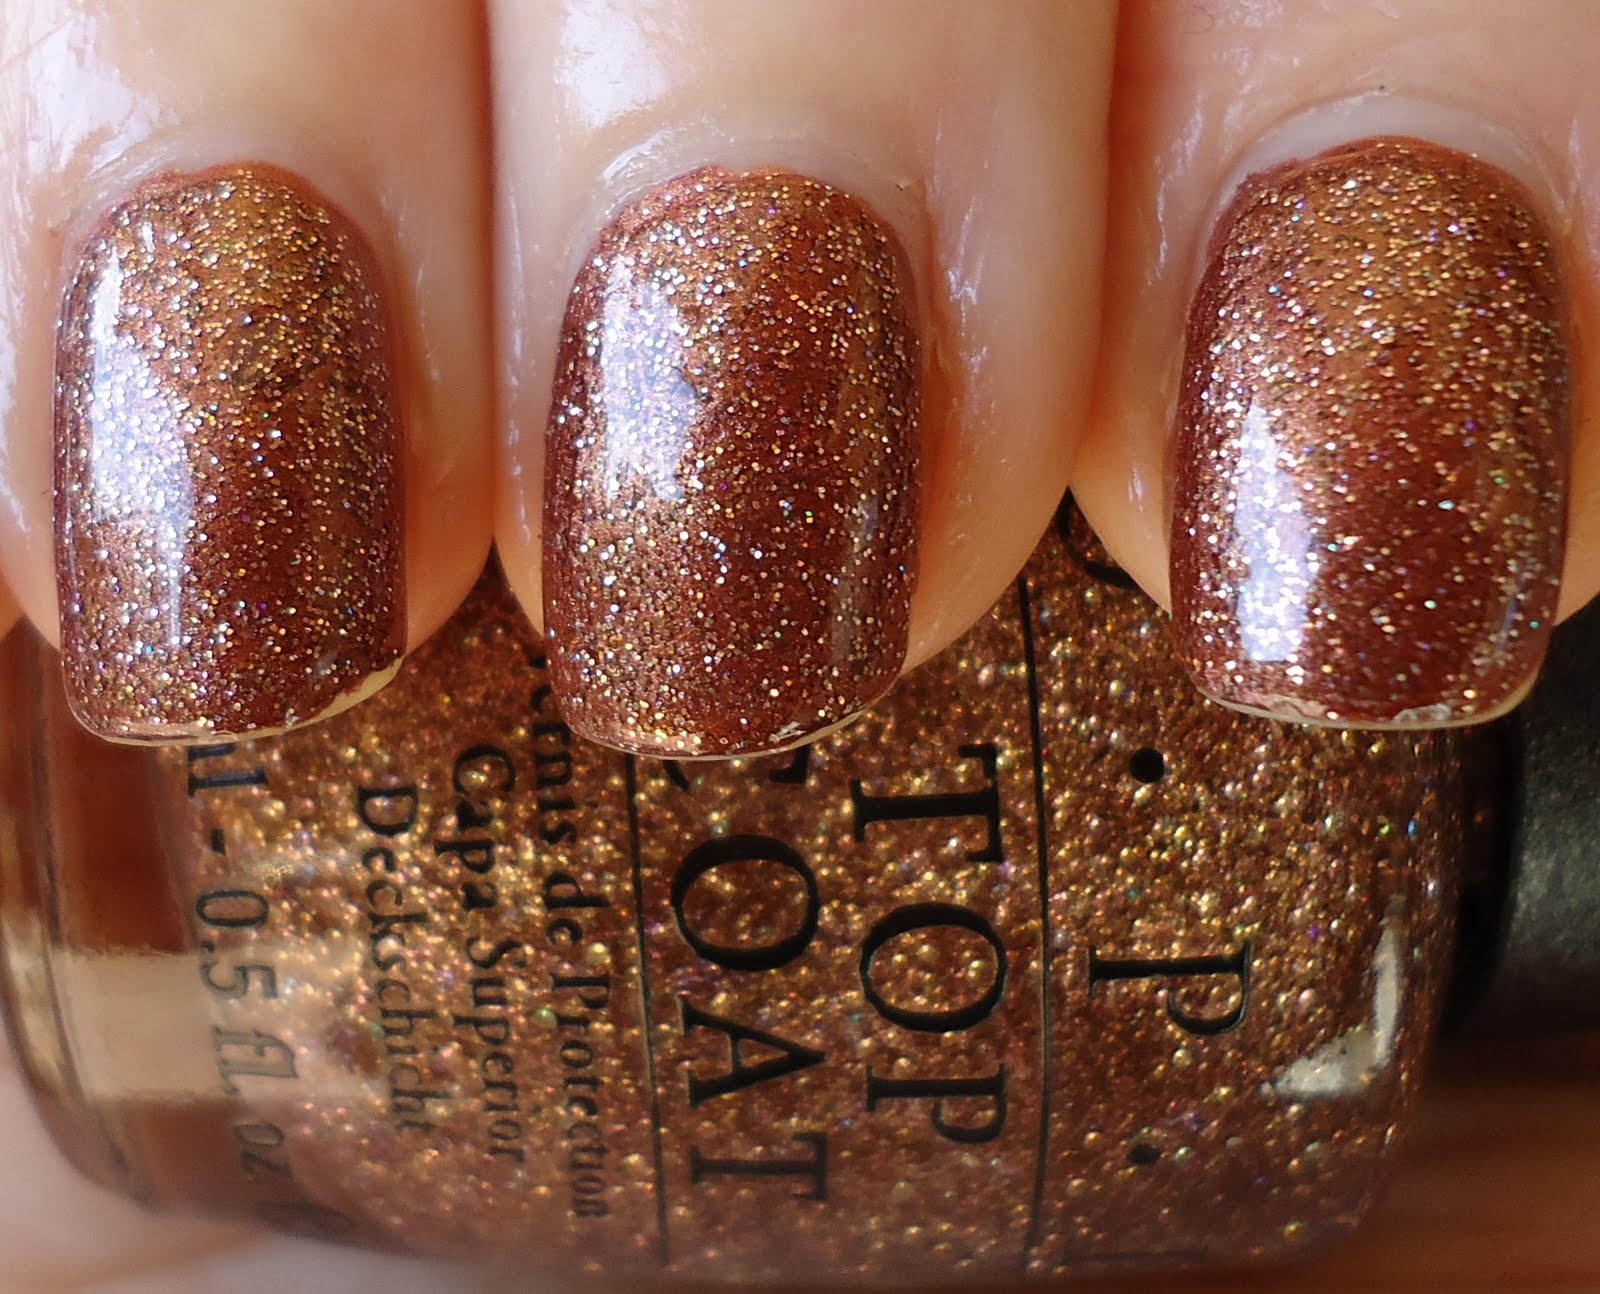 Making up 4 my age: OPI: Nutcracker Sweet glitter top coat